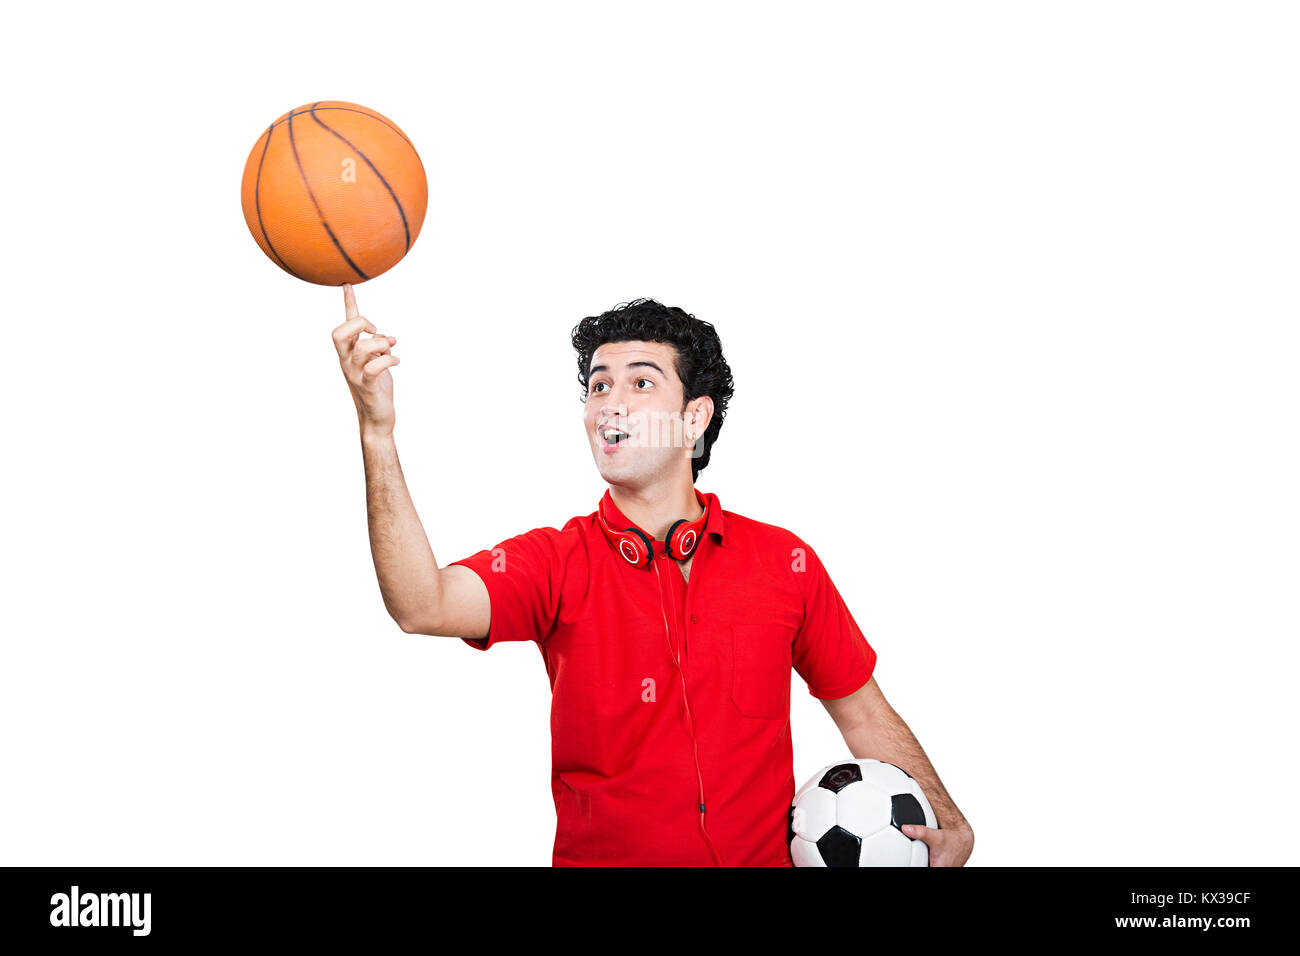 Indian Teenager Boy Trying to Balance a Basketball on his finger Stock Photo